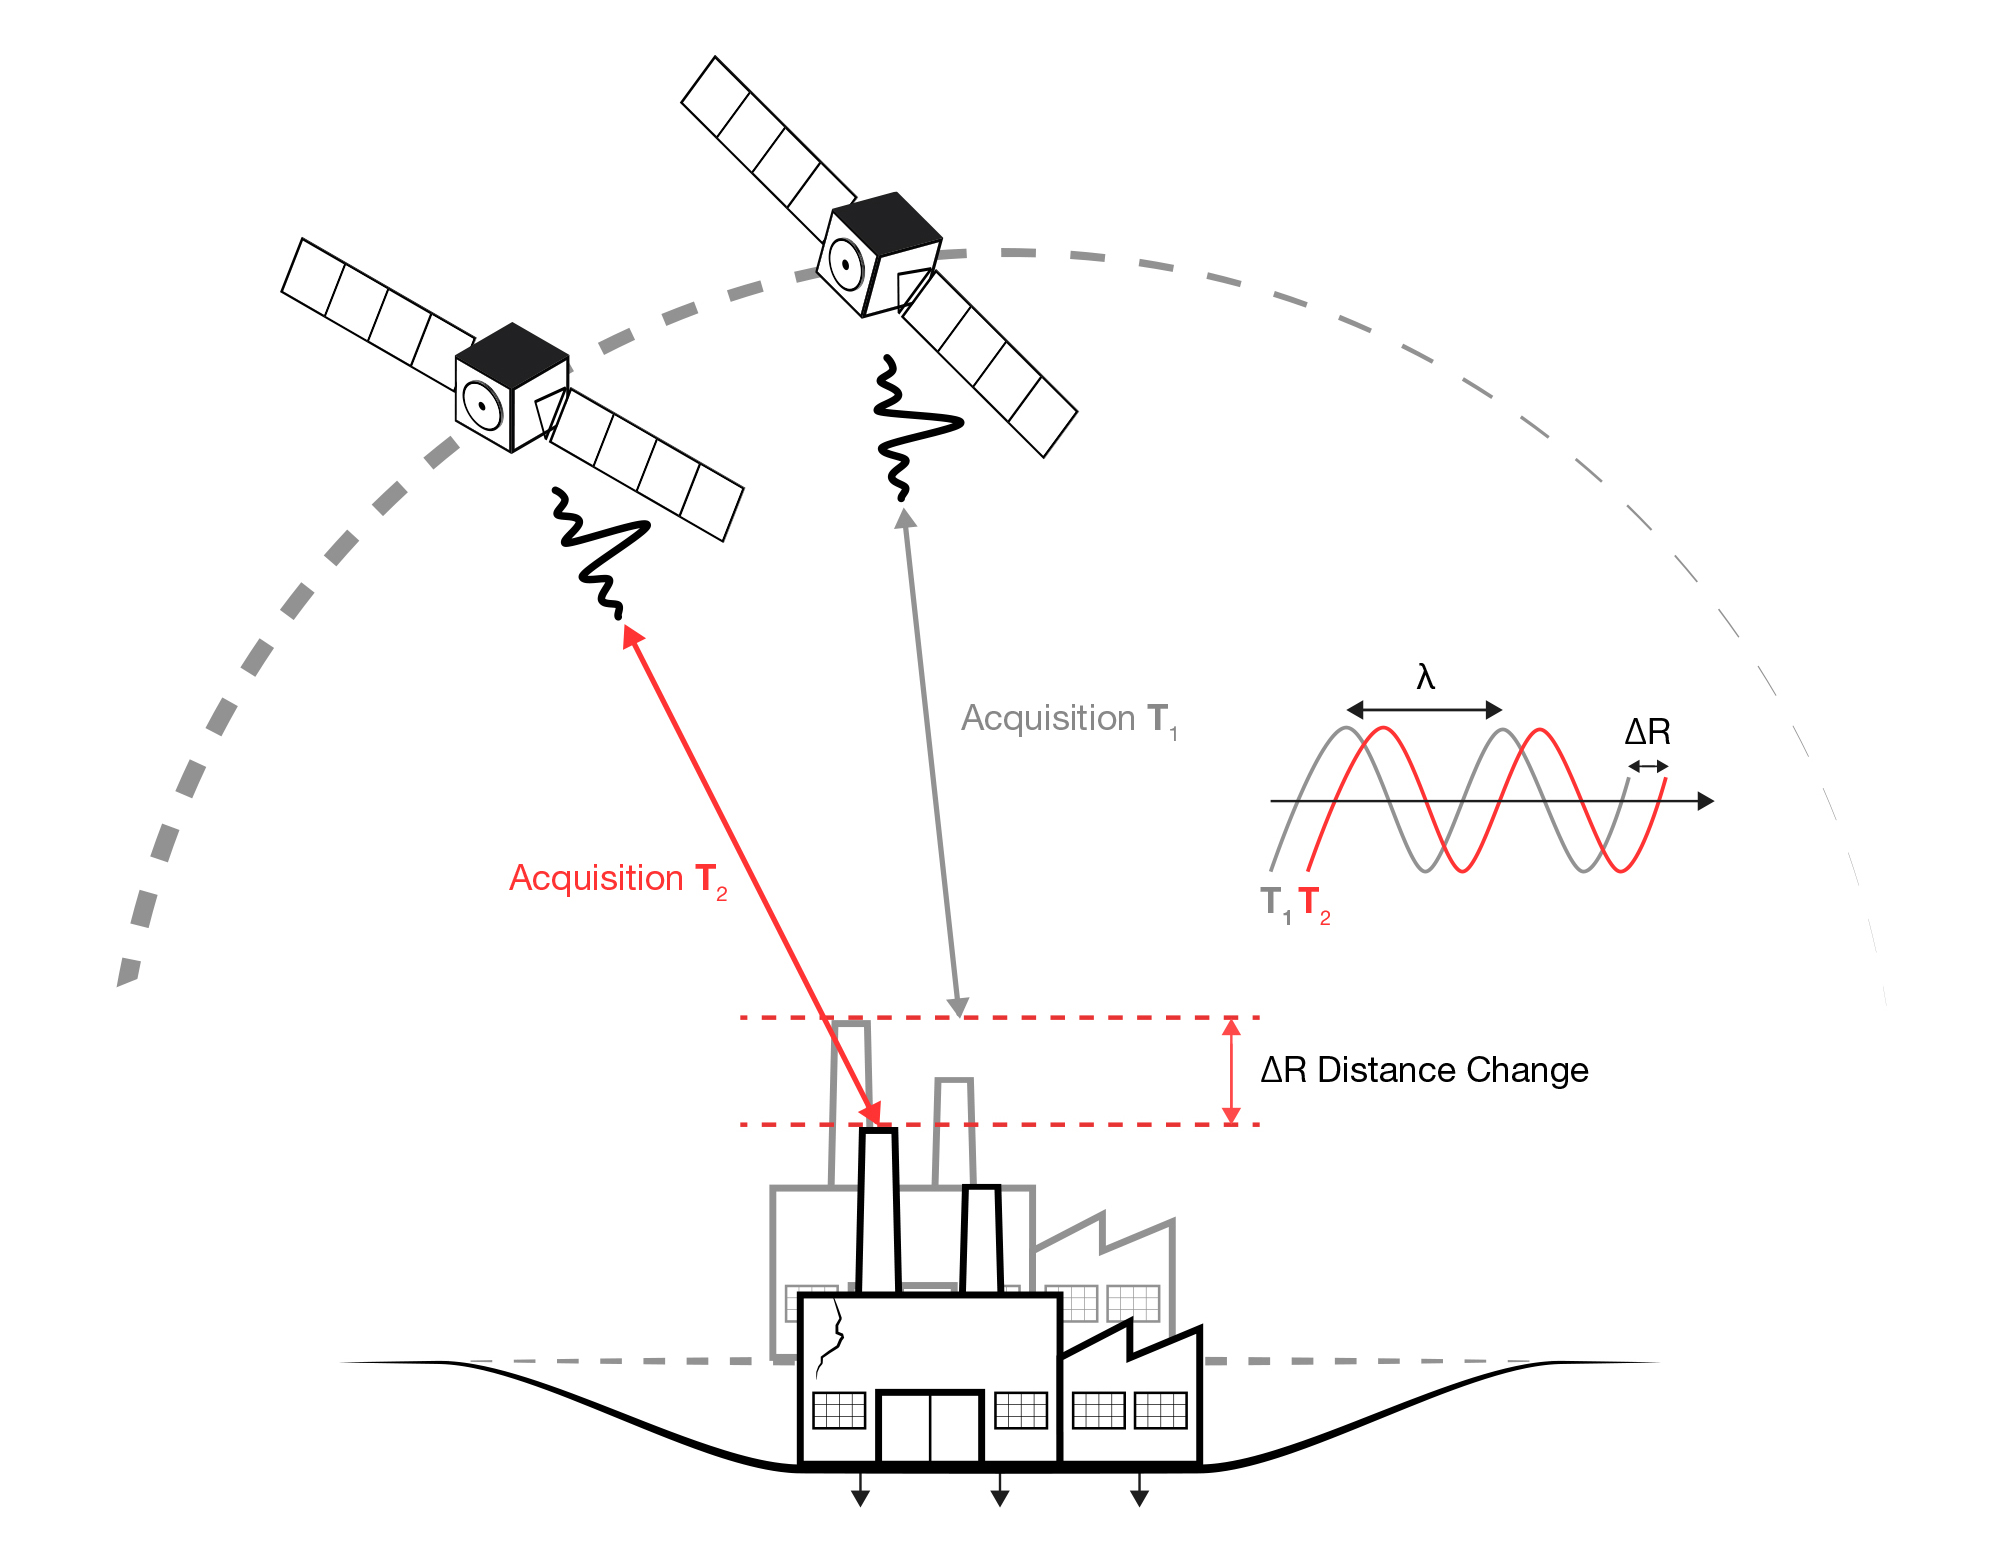 Blog-OT-CG-18-05-2015-image-schema-Interferometry